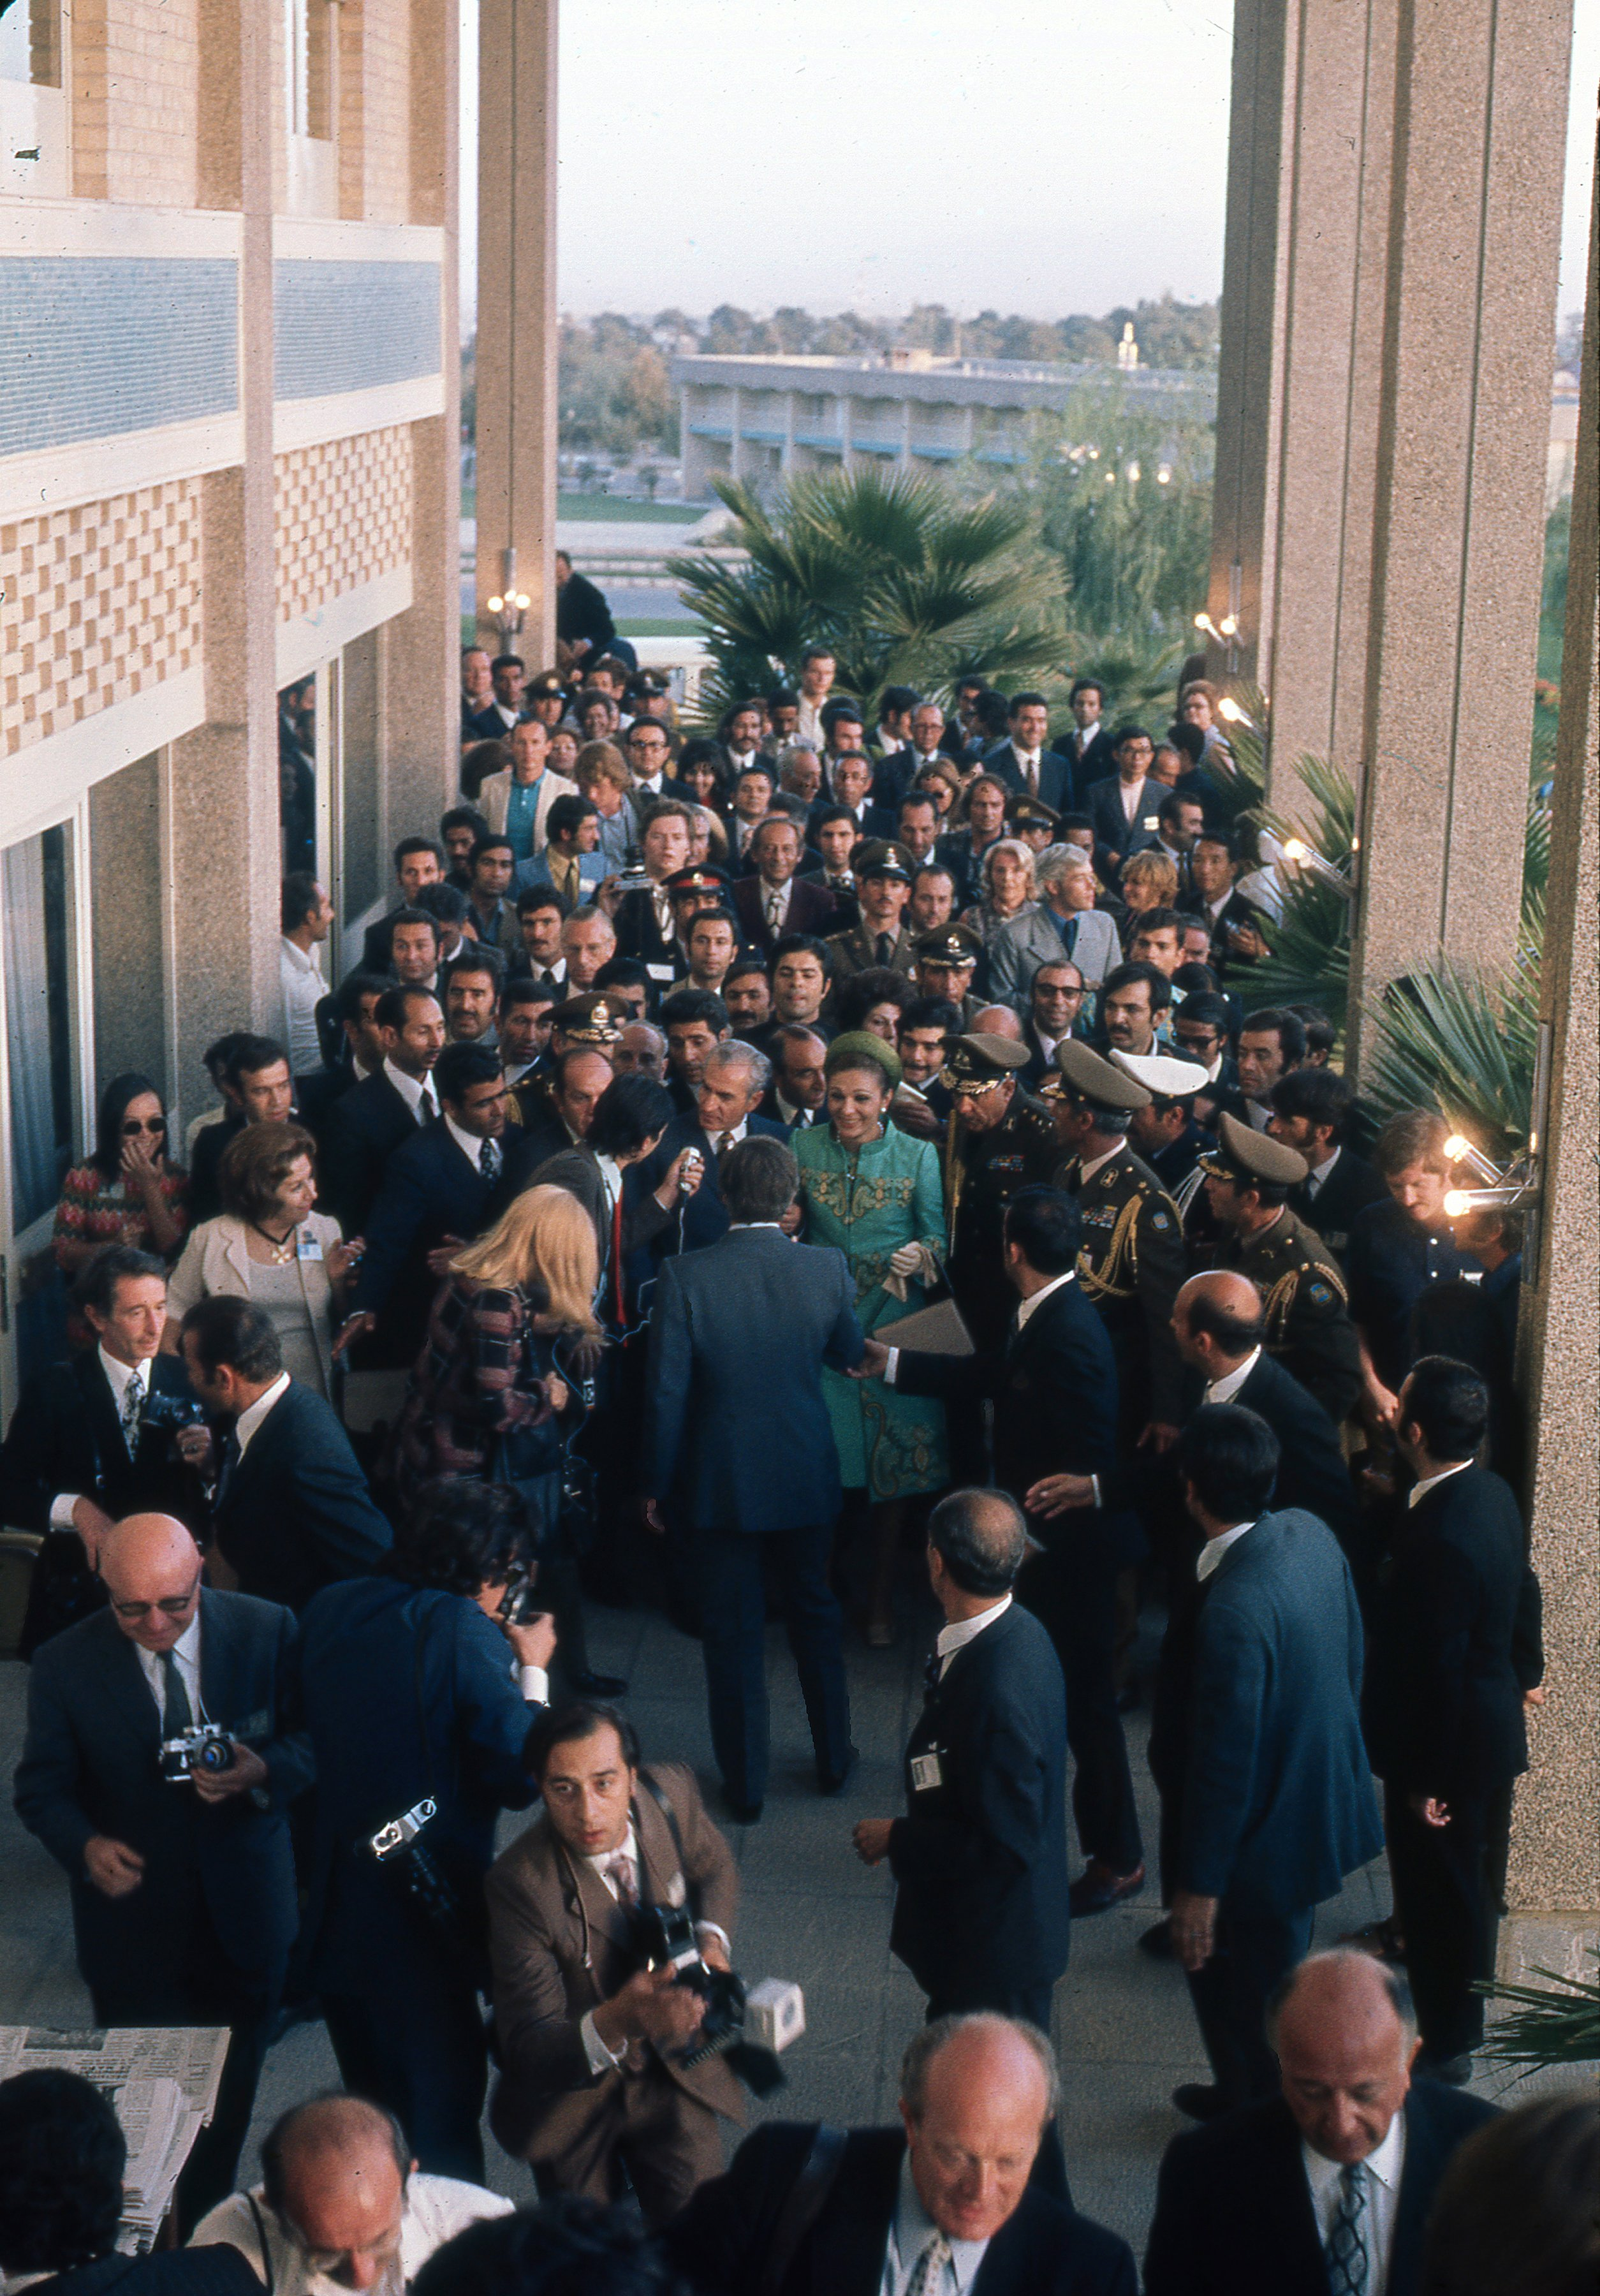 Shah and Shahbanu mingle with officials at celebration of 2500th anniversary of founding of Iranian Empire in trent city erected in ruins of Persepolis and attended by foreign dignitaries in October 1971.